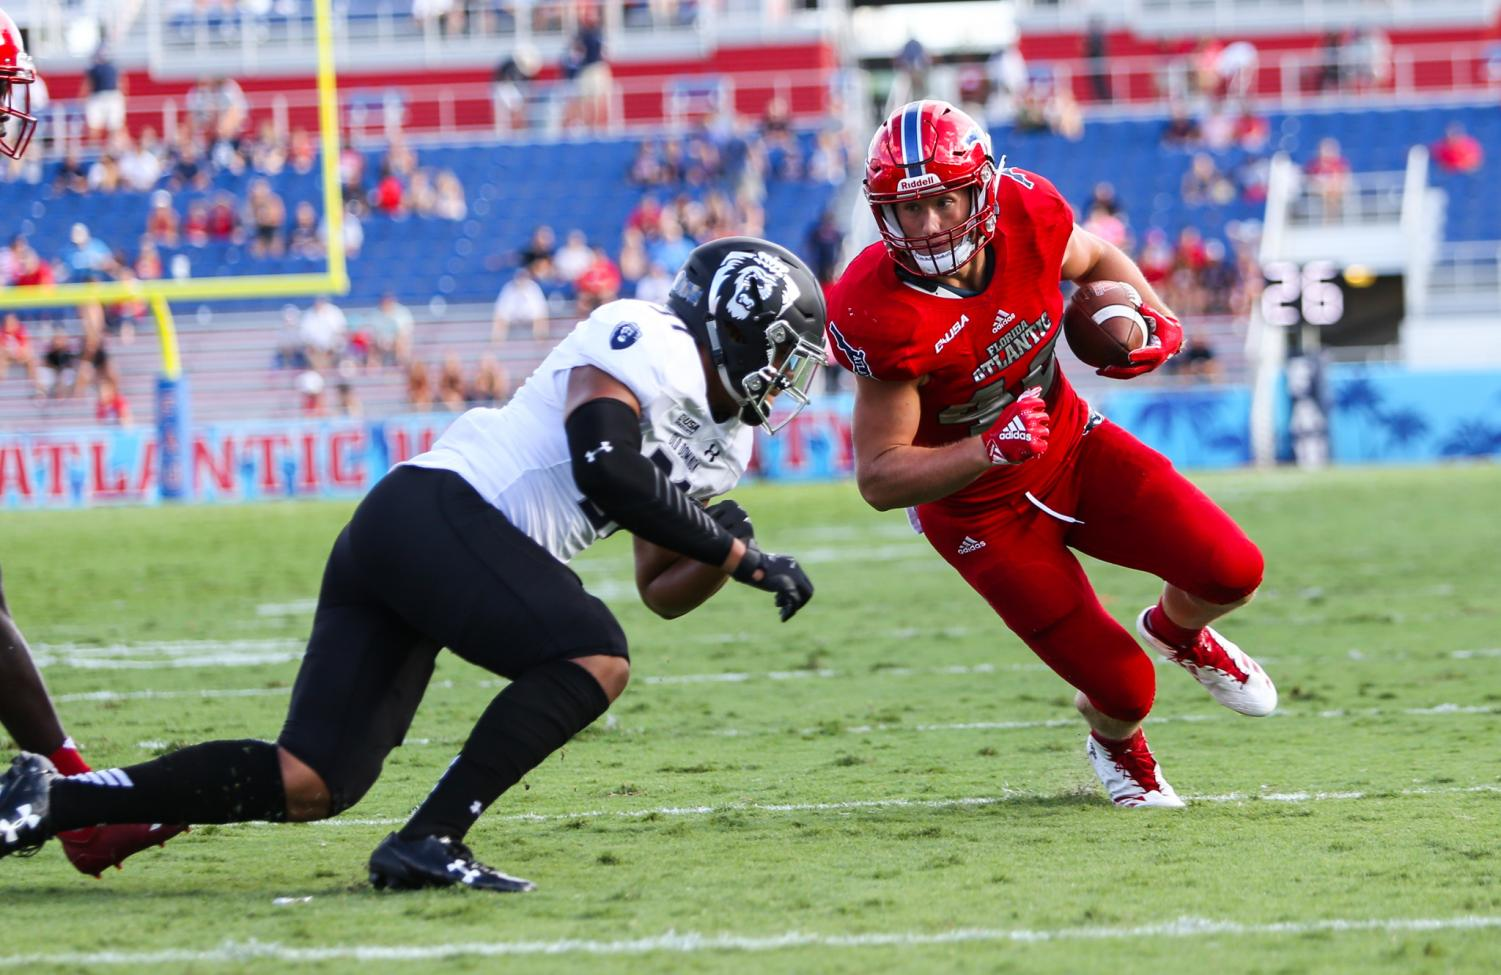 FAU junior tight end Harrison Bryant (40) attempts to run down field to score a touchdown against Old Dominion. Photo by Alexander Rodriguez